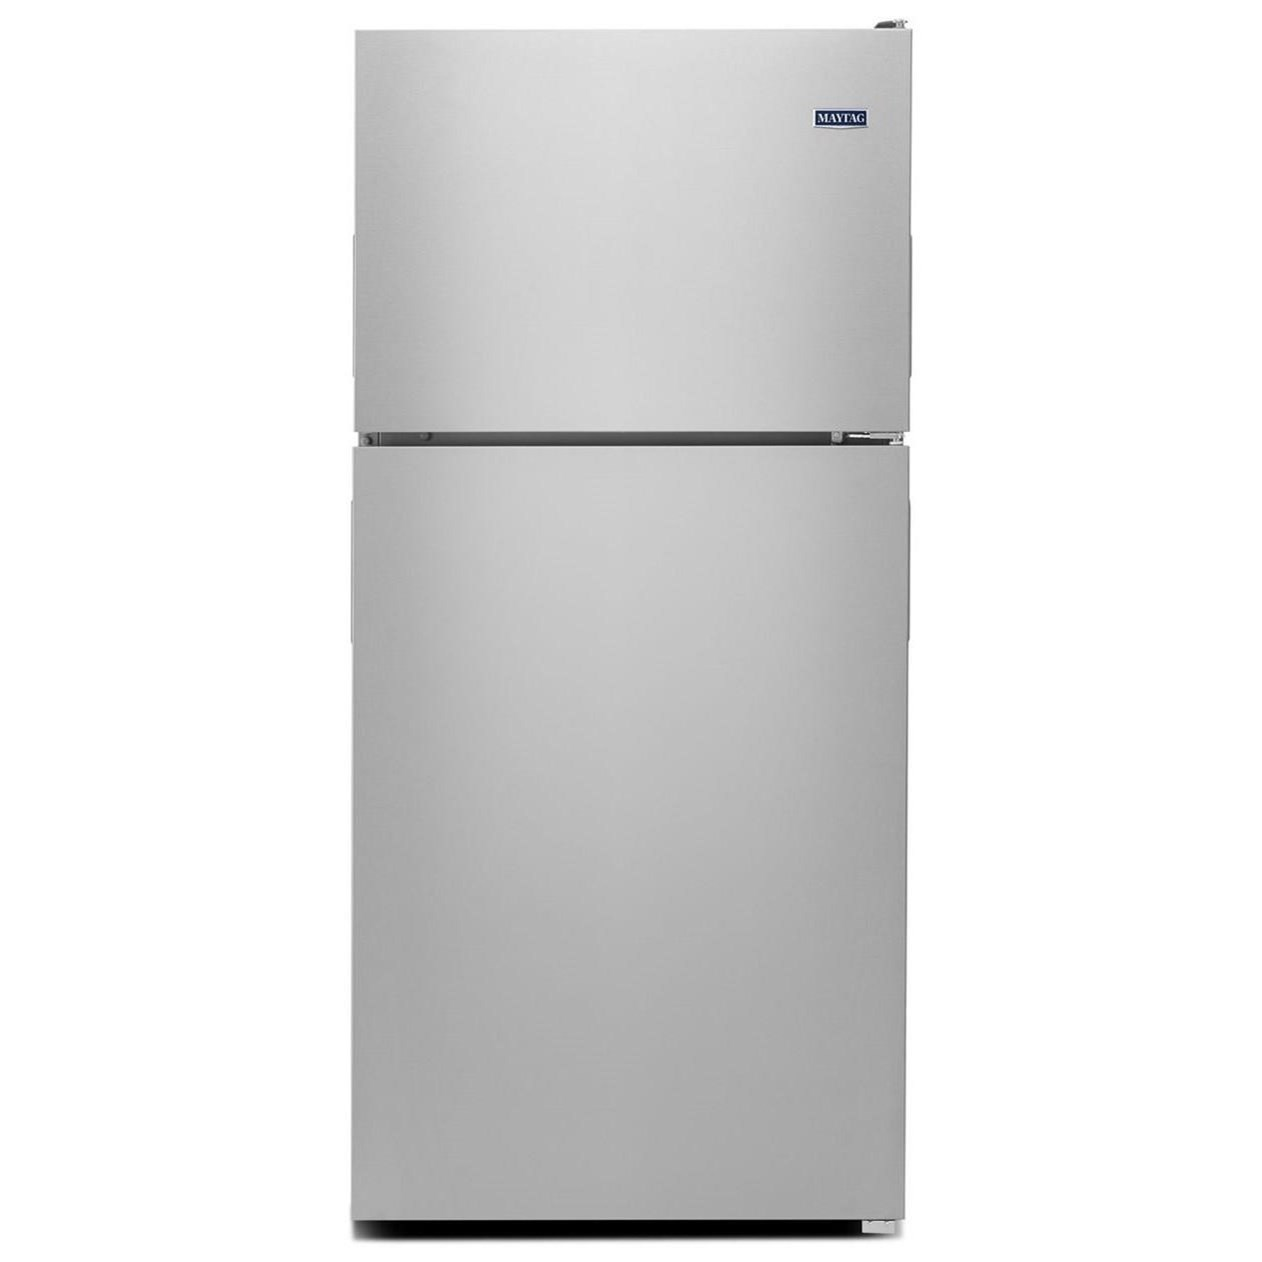 Maytag Top-Freezer Refrigerators 33-Inch Wide Top Freezer Refrigerator - Item Number: MRT311FFFM